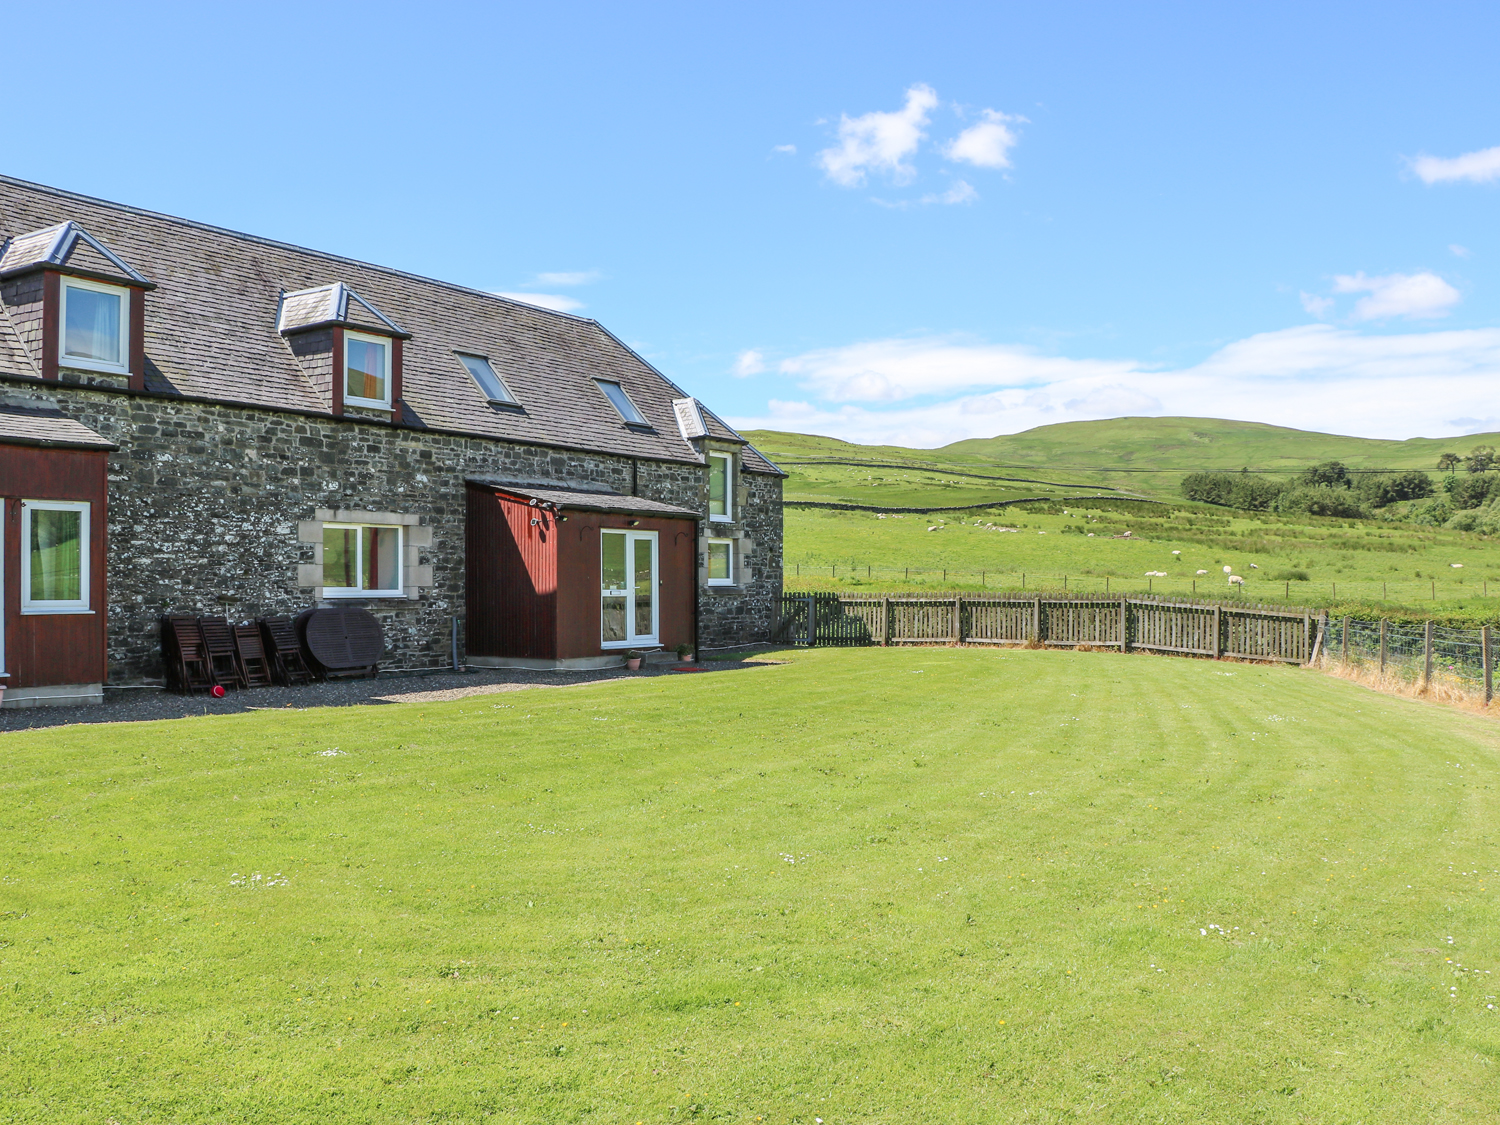 7 bedroom Cottage for rent in Yarrow Valley